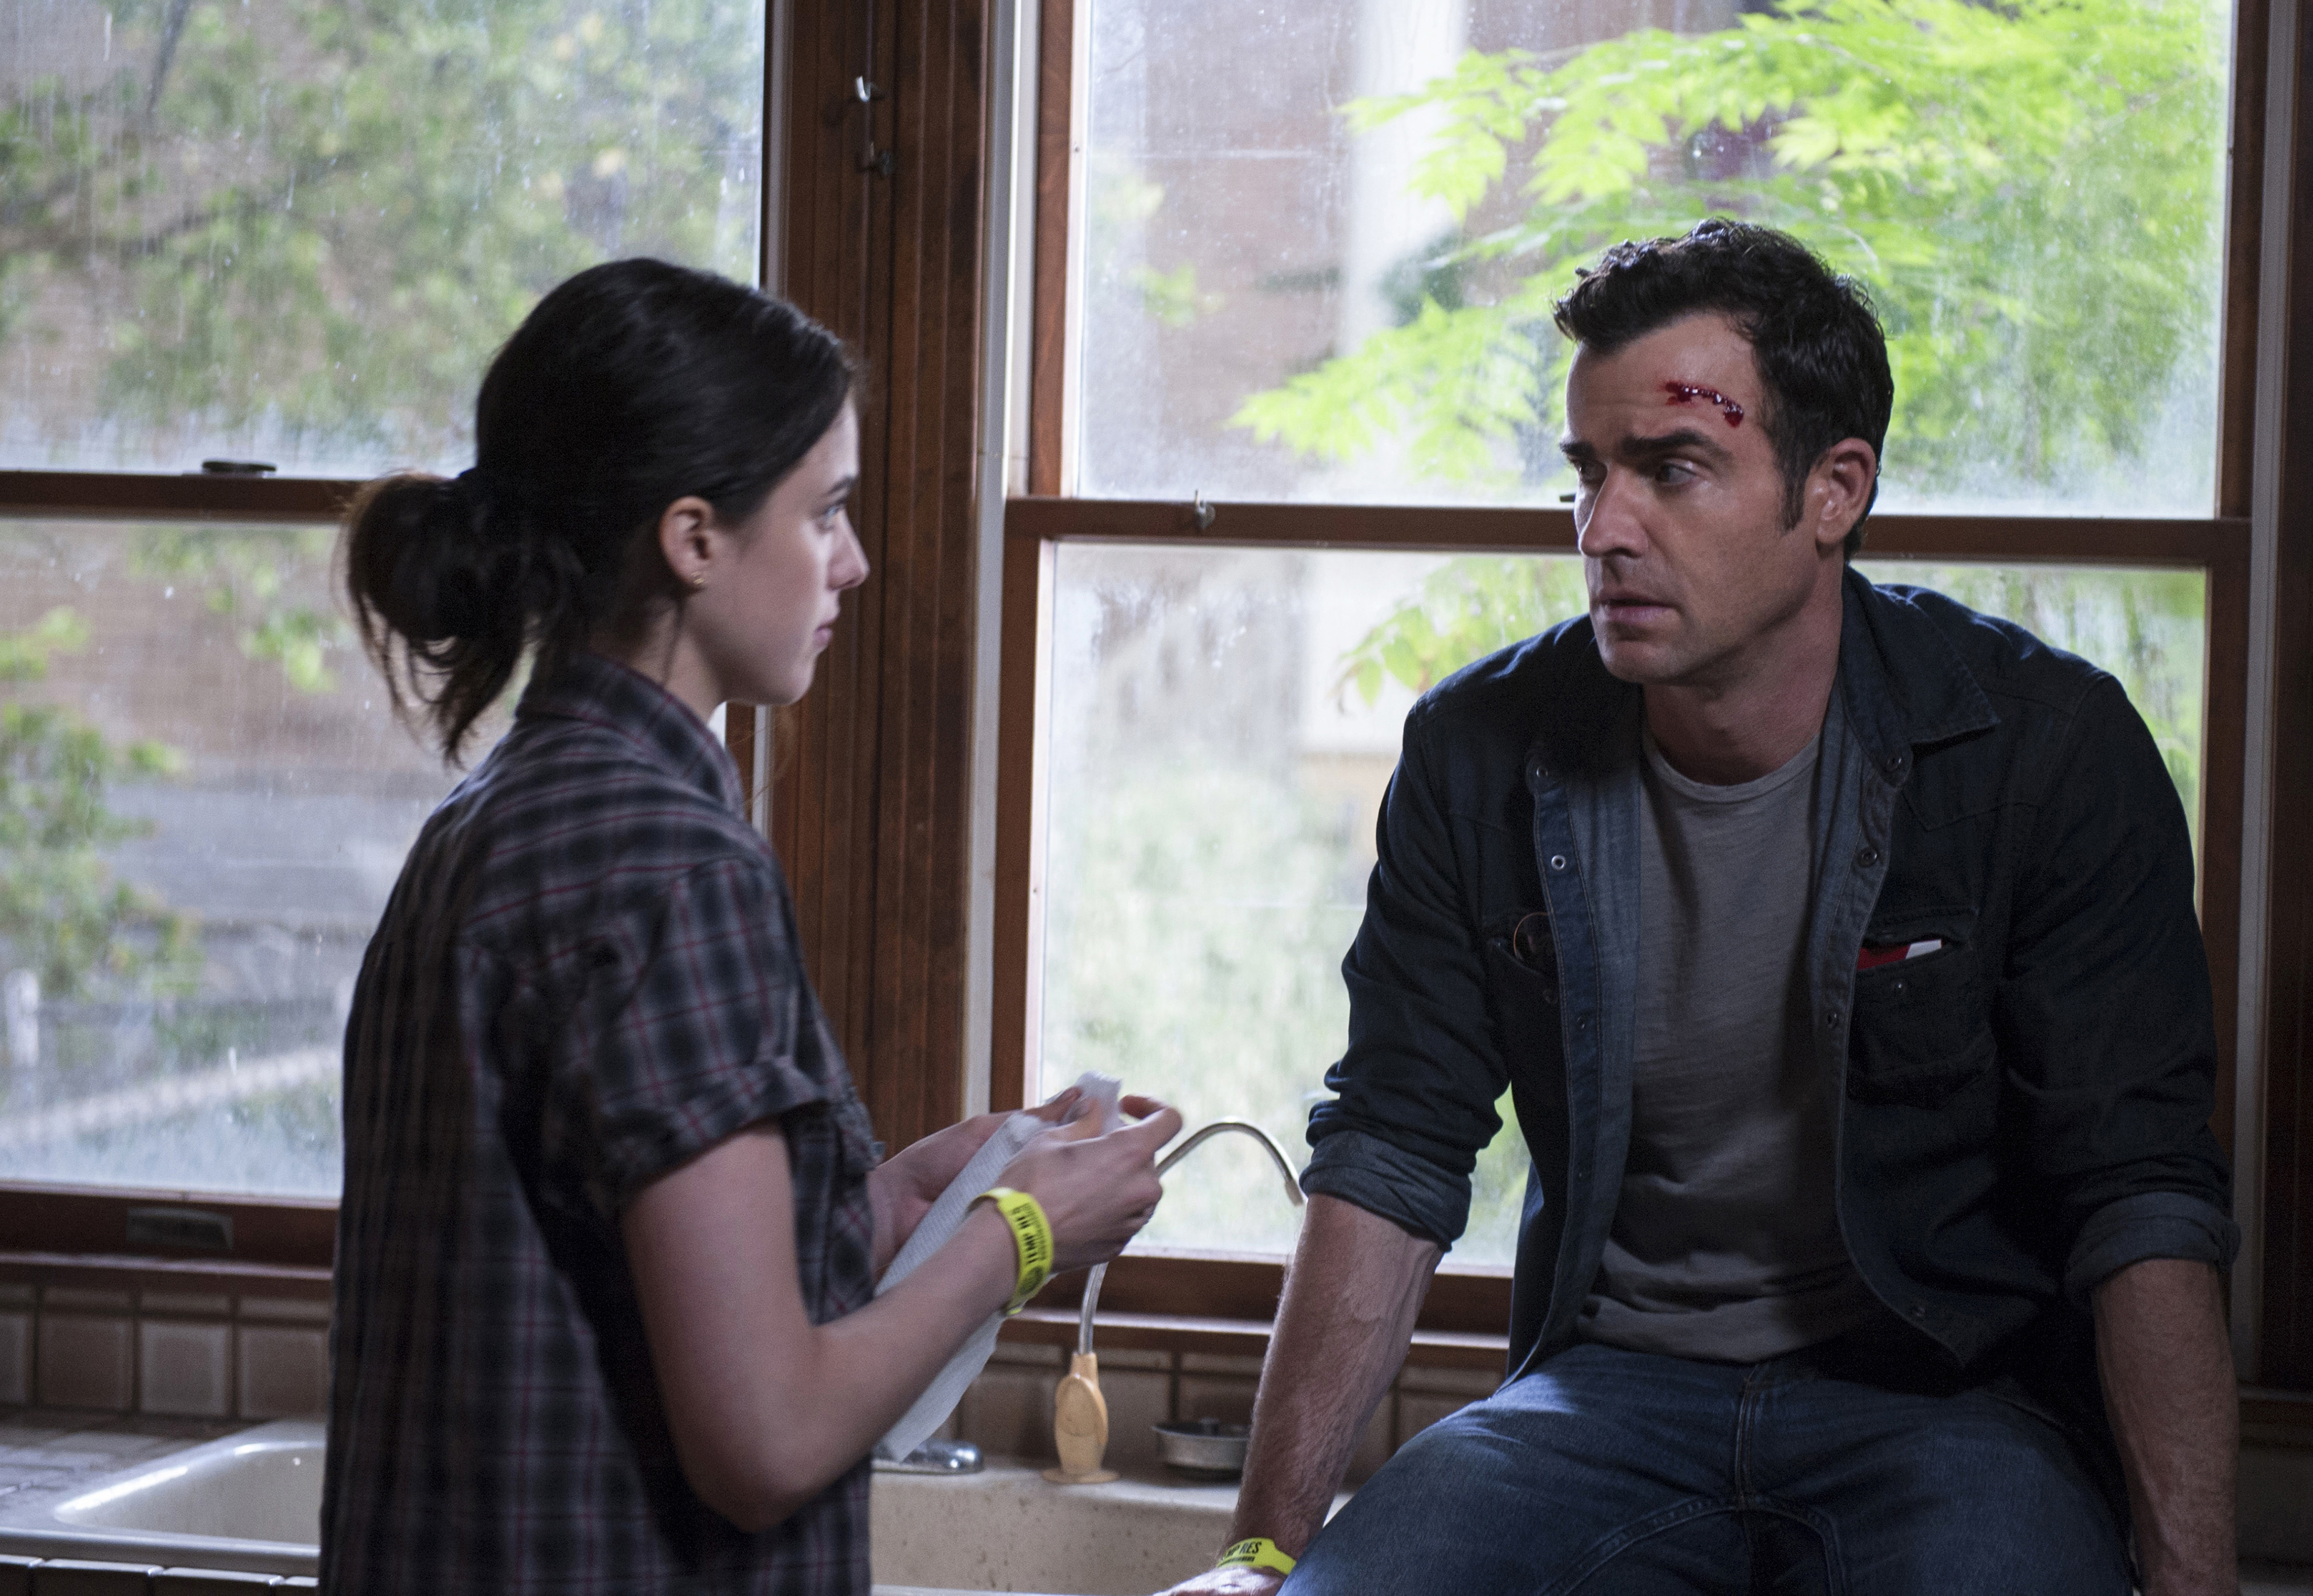 Still of Justin Theroux and Margaret Qualley in The Leftovers (2014)